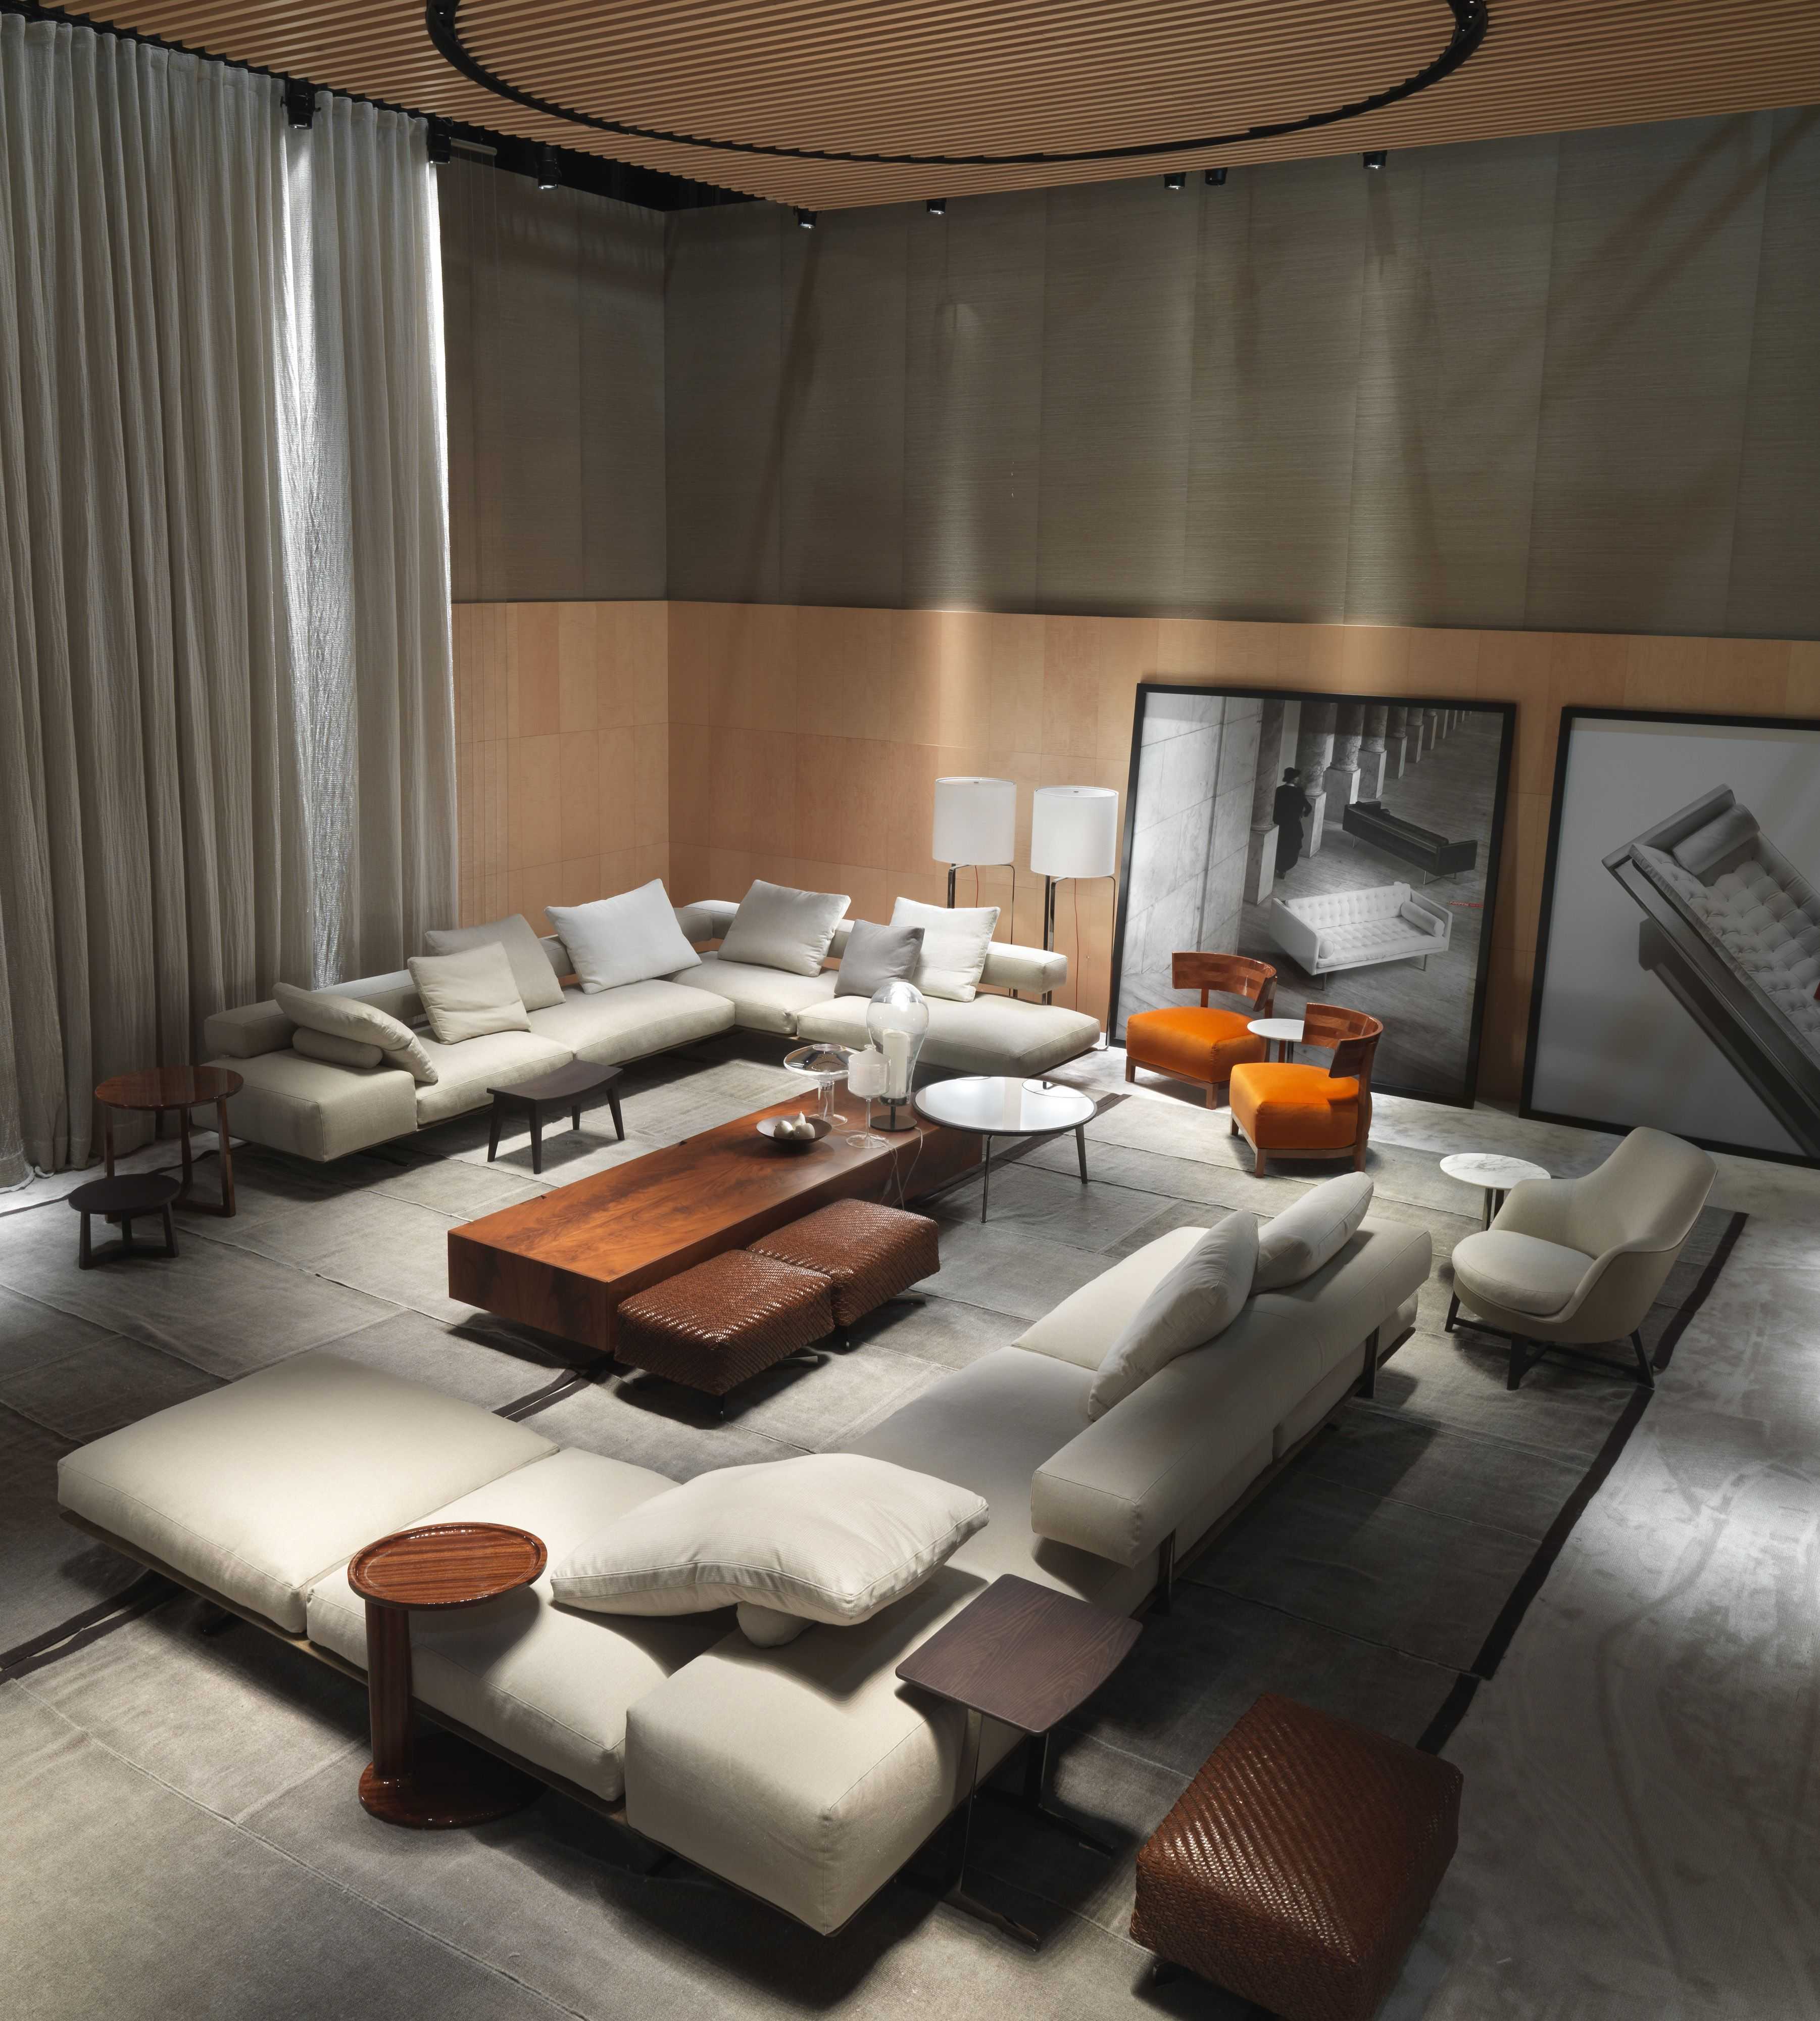 Flexform Wing Sectional Sofa Area Modern Living Room House Interior Living Room Designs #non #matching #sofas #in #living #room